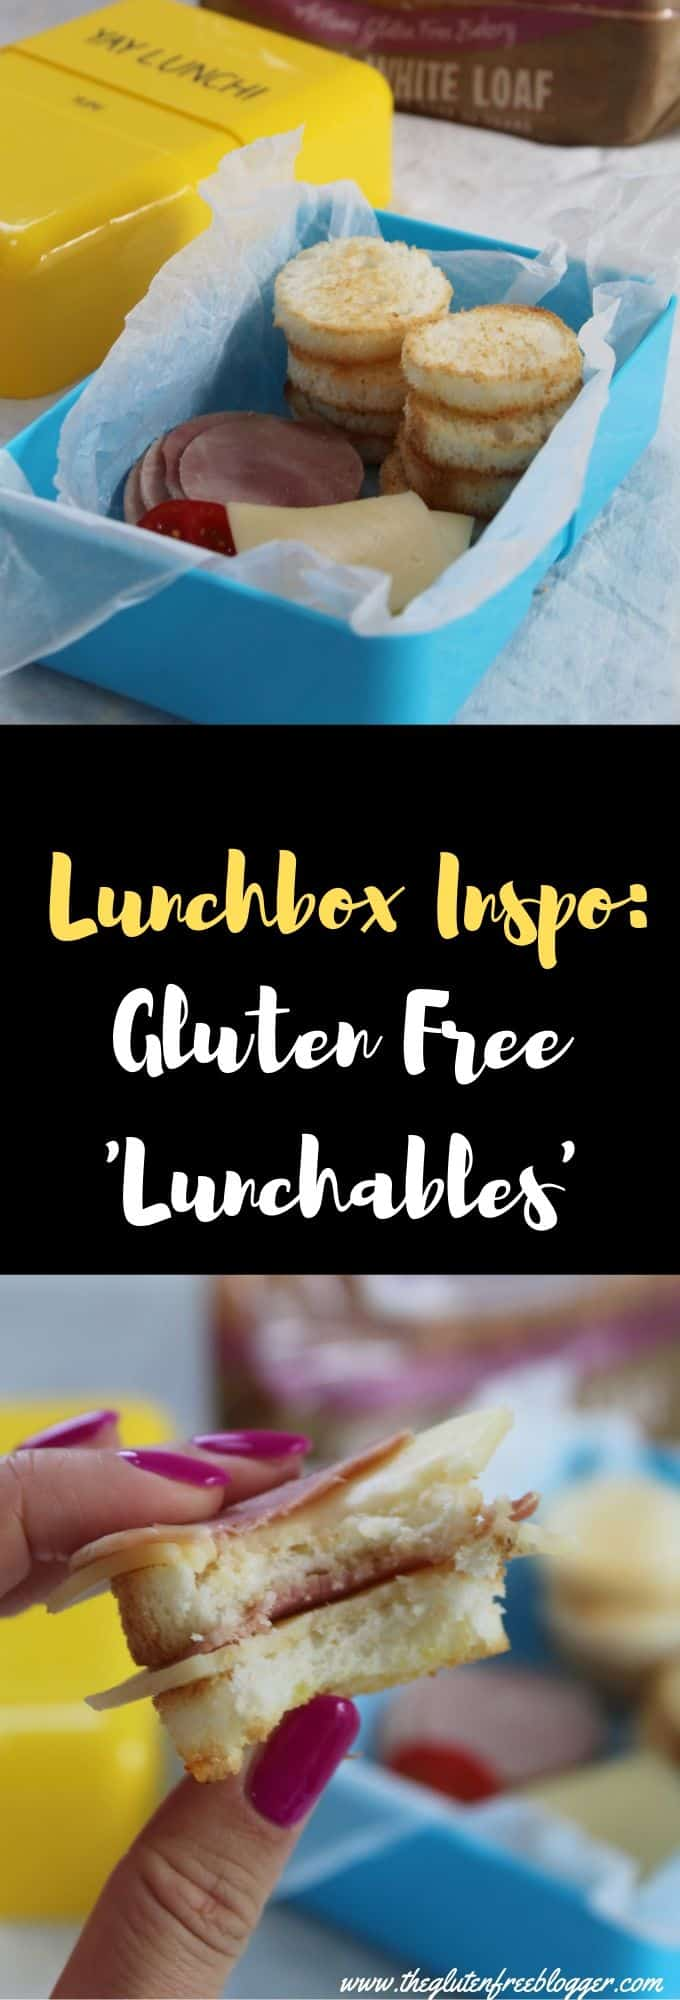 gluten free lunchbox ideas - gluten free children, coeliac children, lunch ideas for kids DIY lunchables